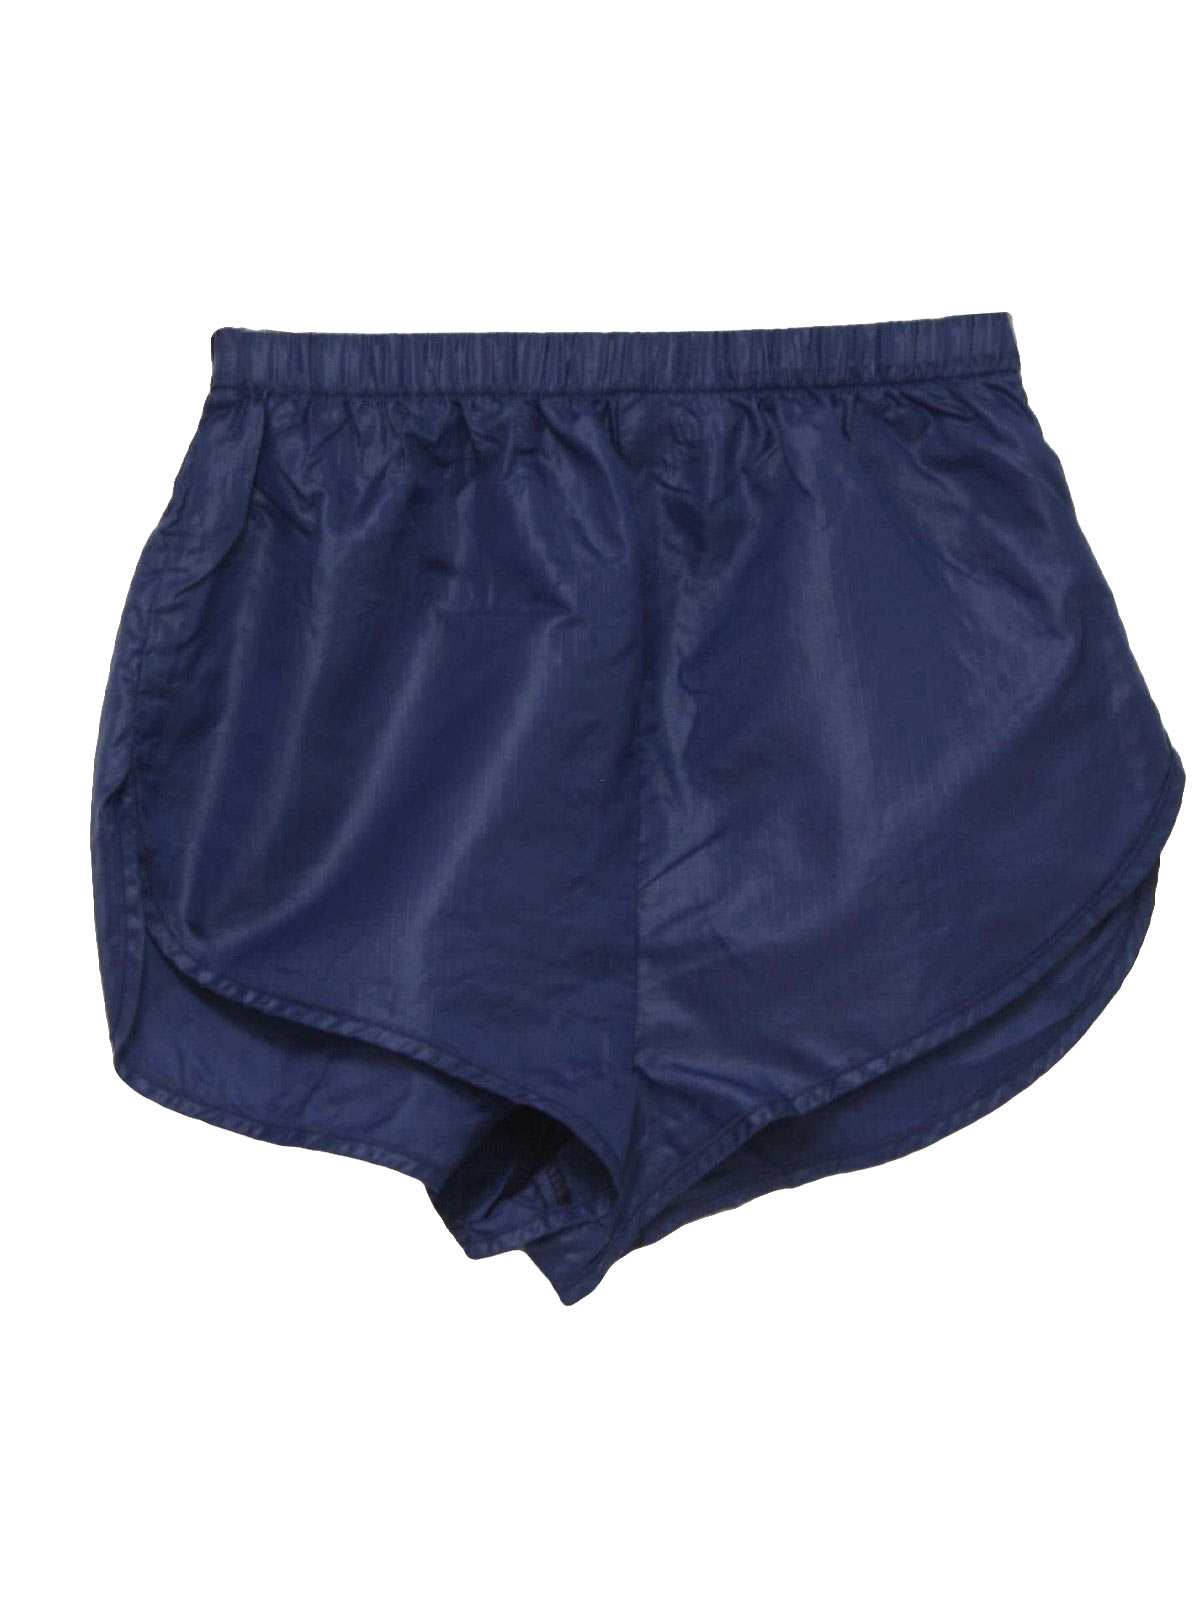 1990s Vintage Shorts: 90s -Body Wrappers- Womens navy blue nylon ...